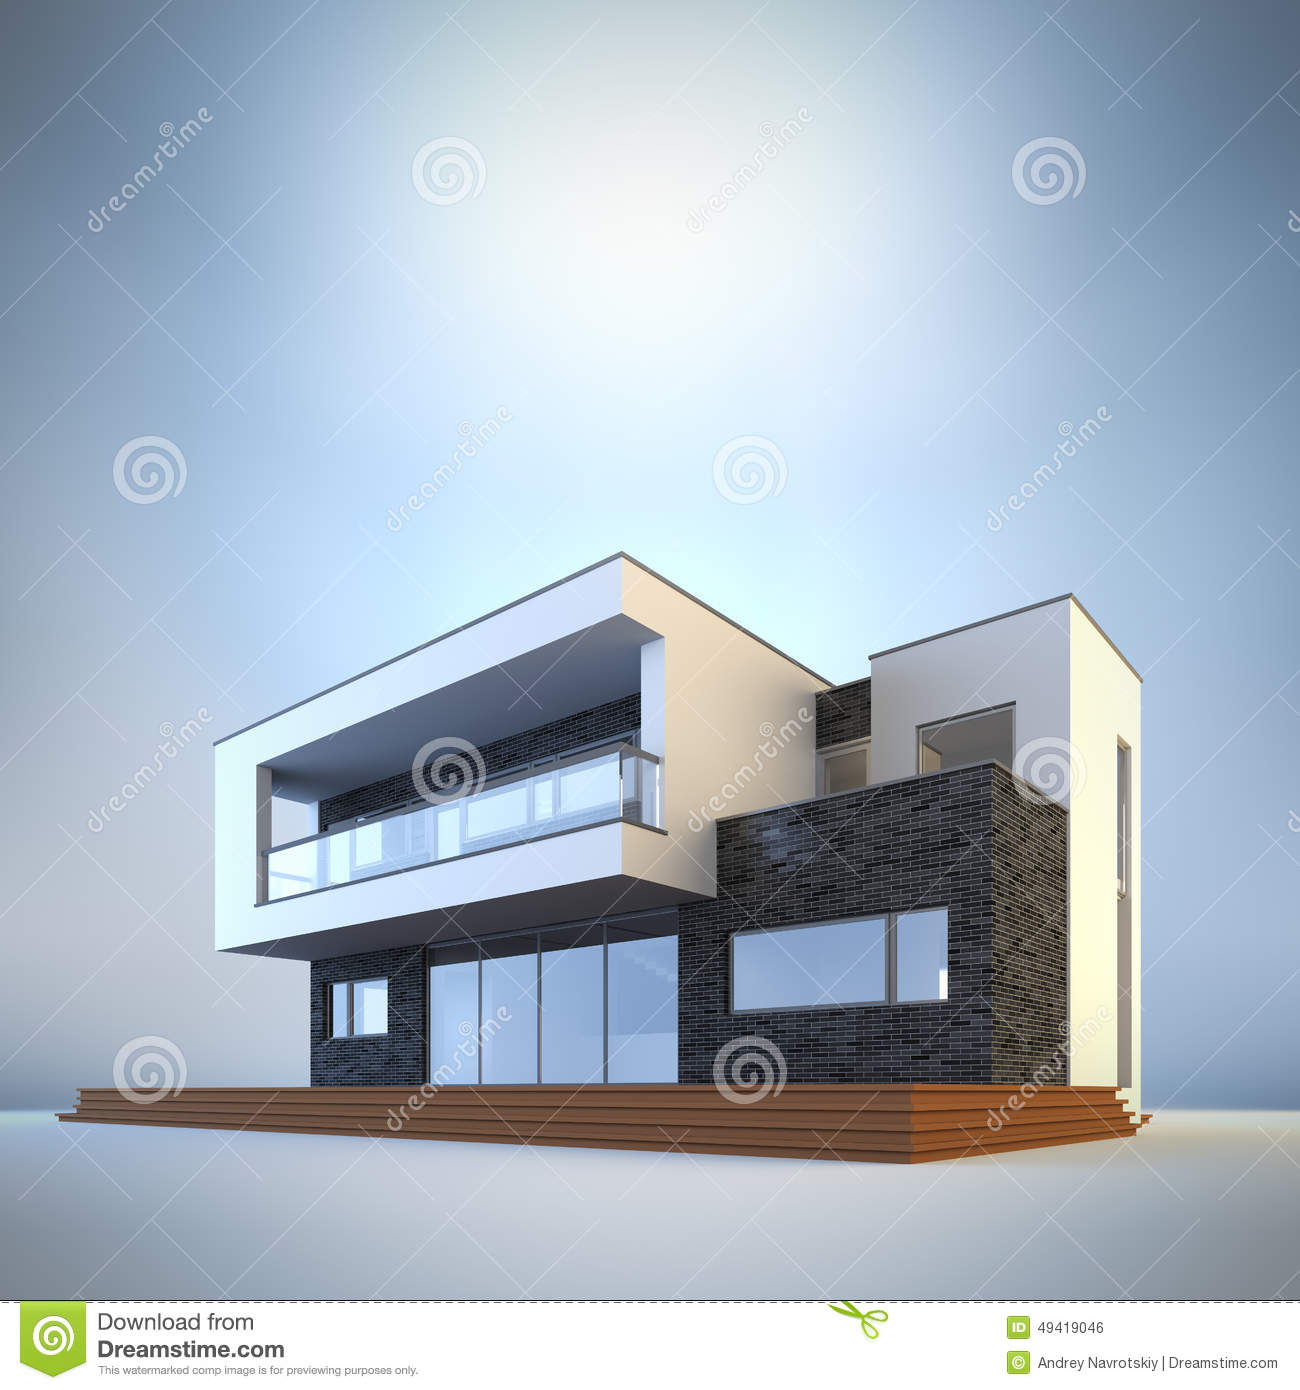 Maison minimaliste contemporaine illustration stock image 49419046 - Minimaliste maison ...